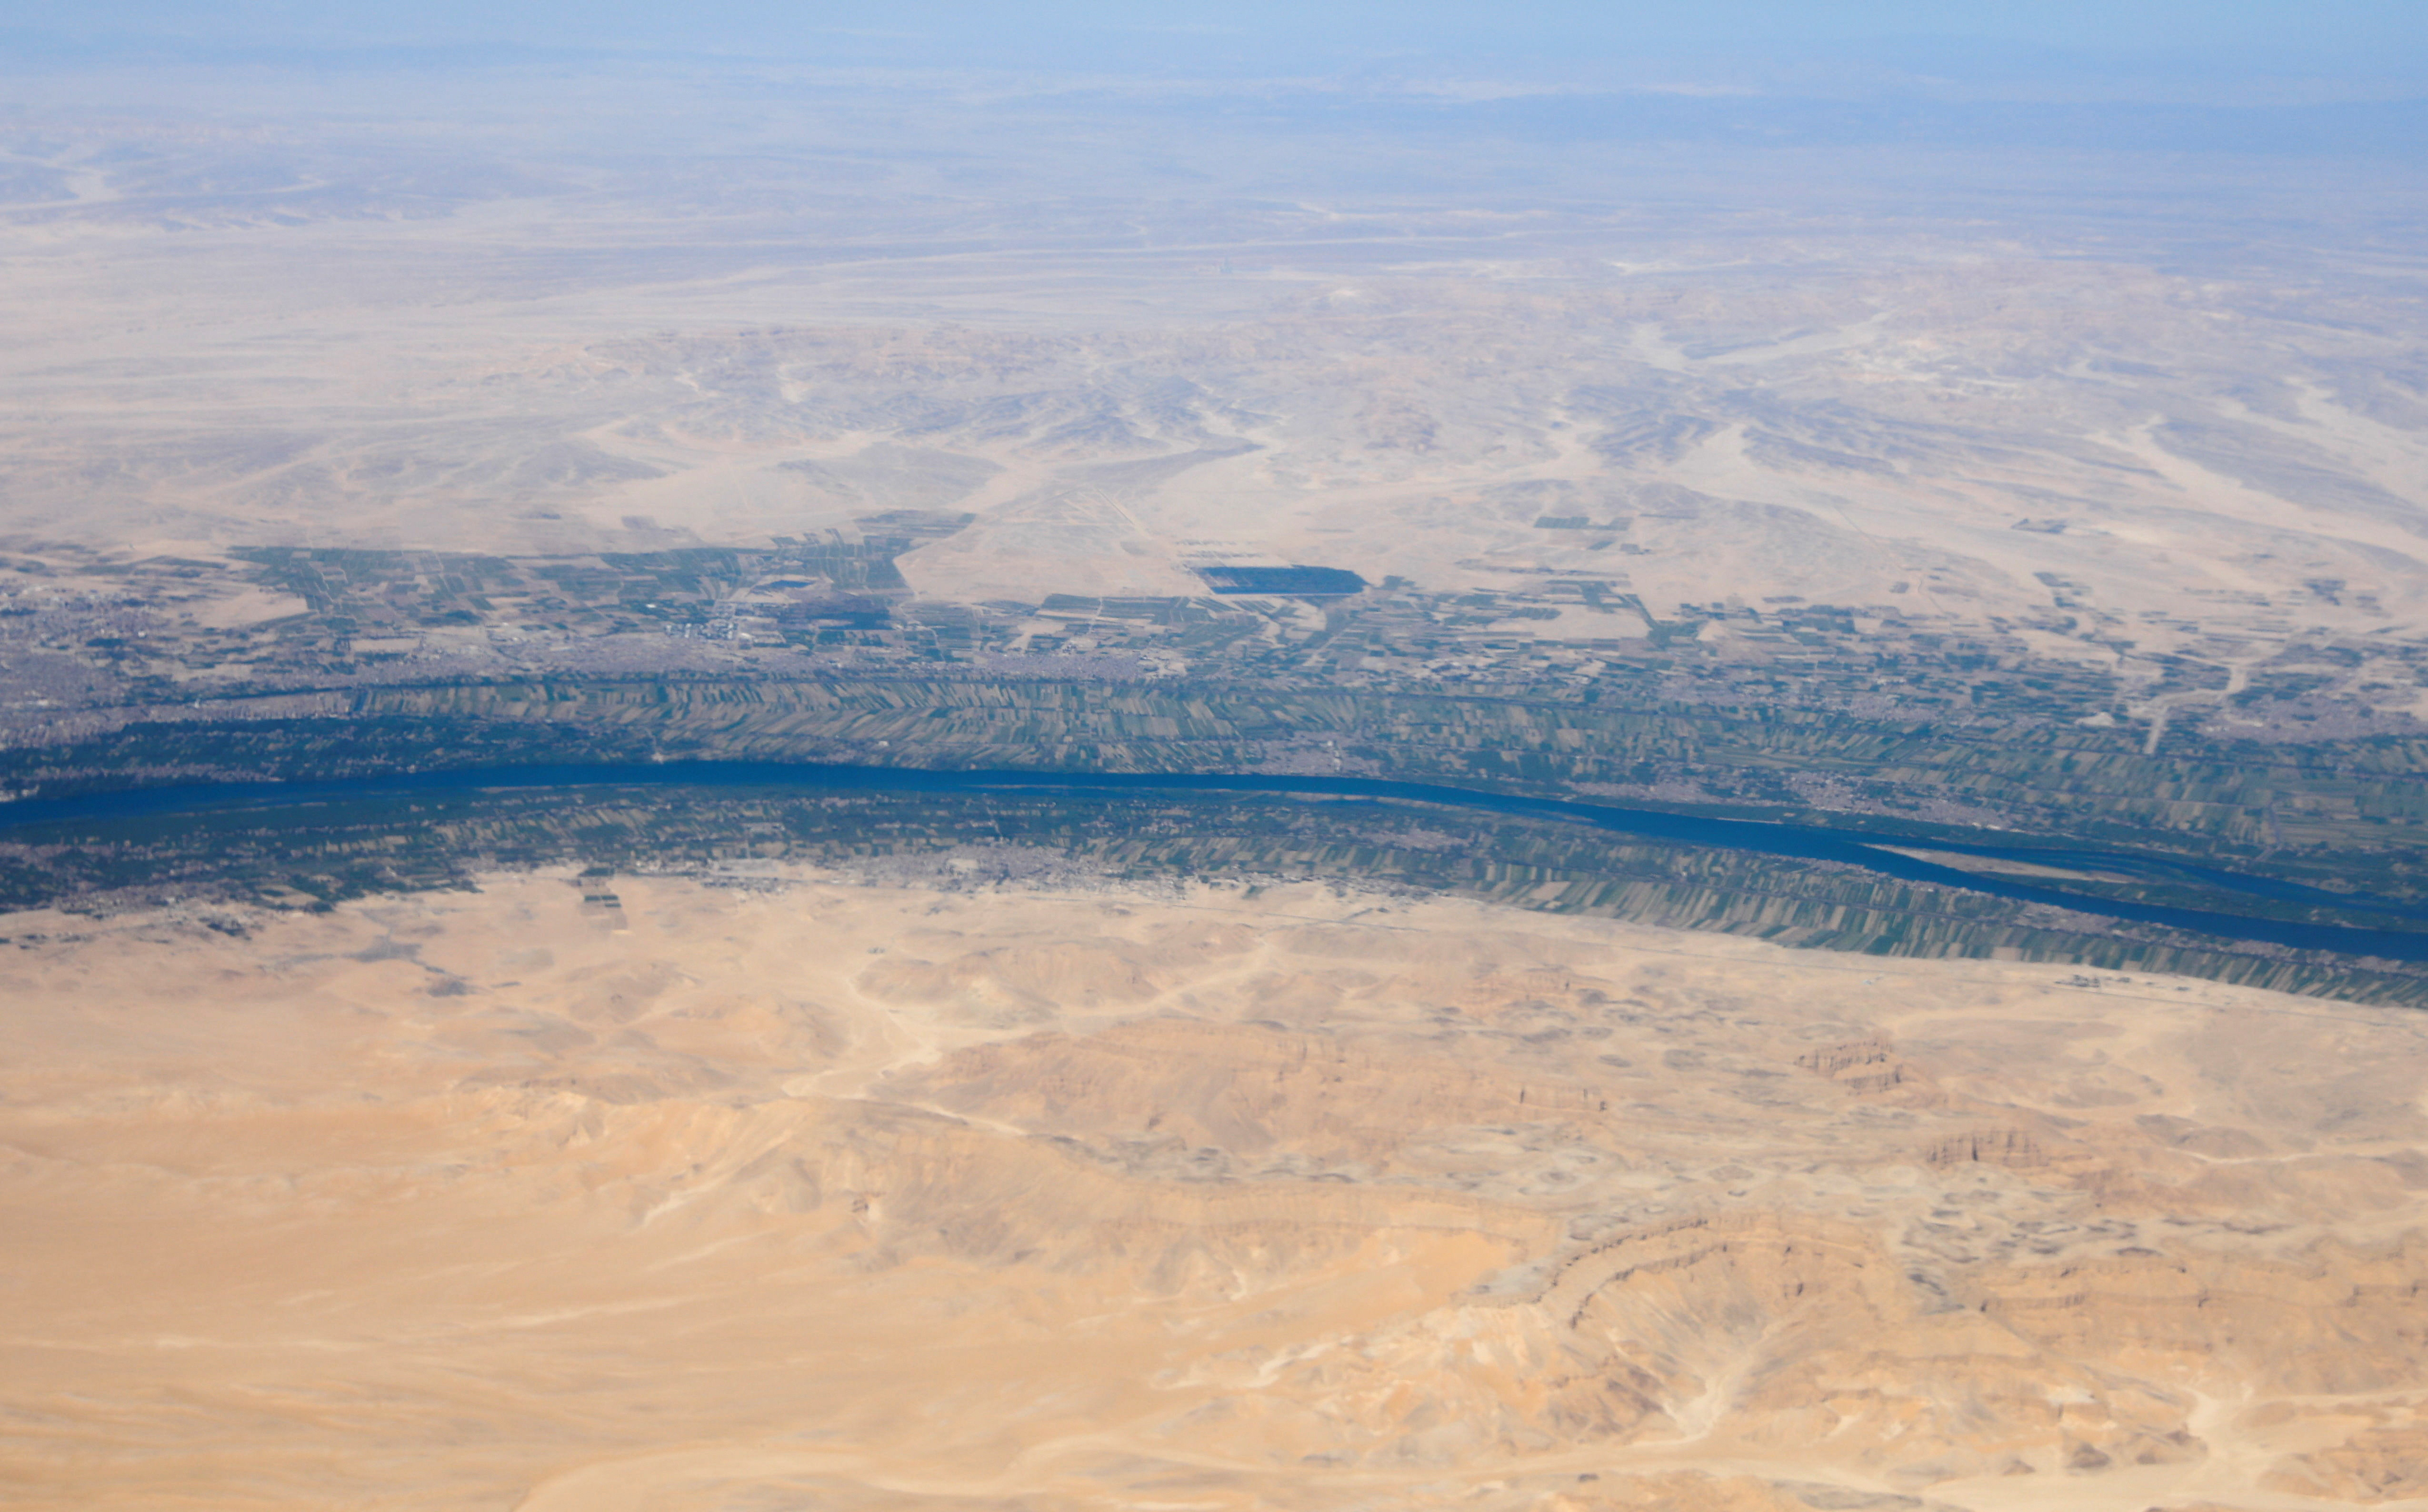 An aerial view of the River Nile valley and desert pictured through the window of an airplane on a flight between Cairo and Luxor, Egypt April 11, 2021. Picture taken April 11, 2021.